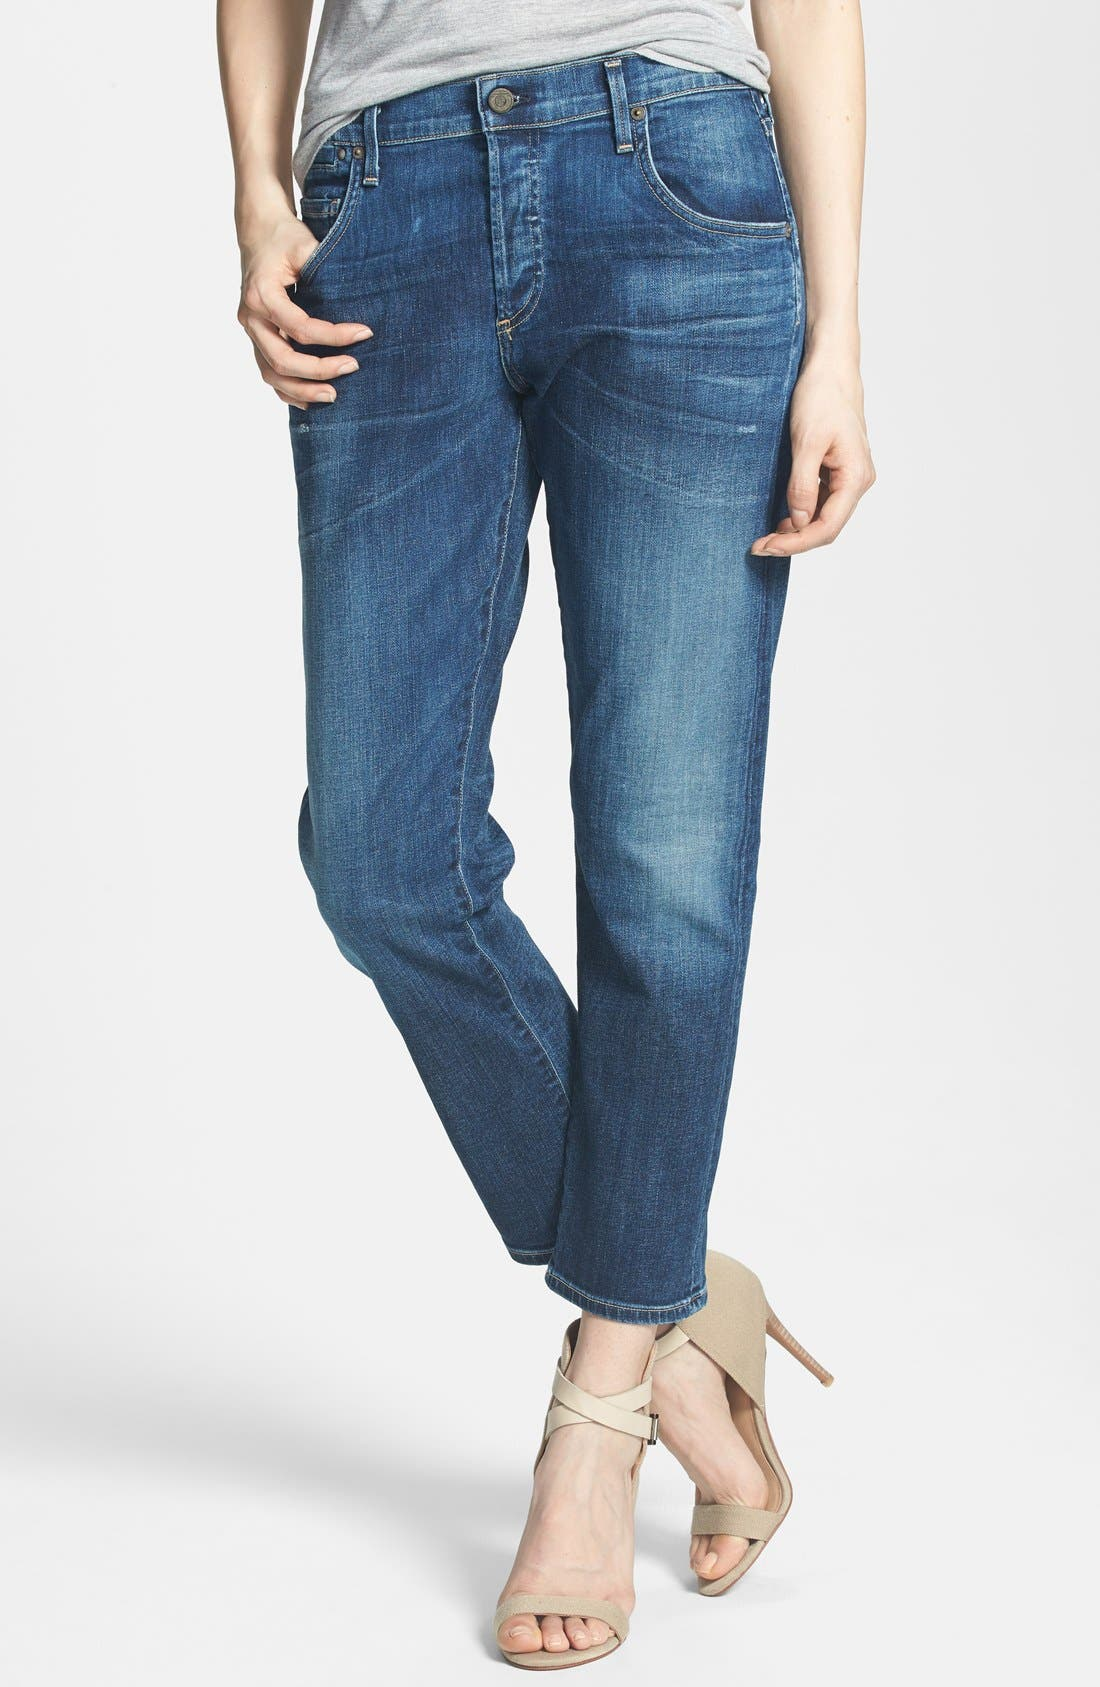 Emerson Slim Boyfriend Jeans,                             Main thumbnail 1, color,                             BLUE RIDGE